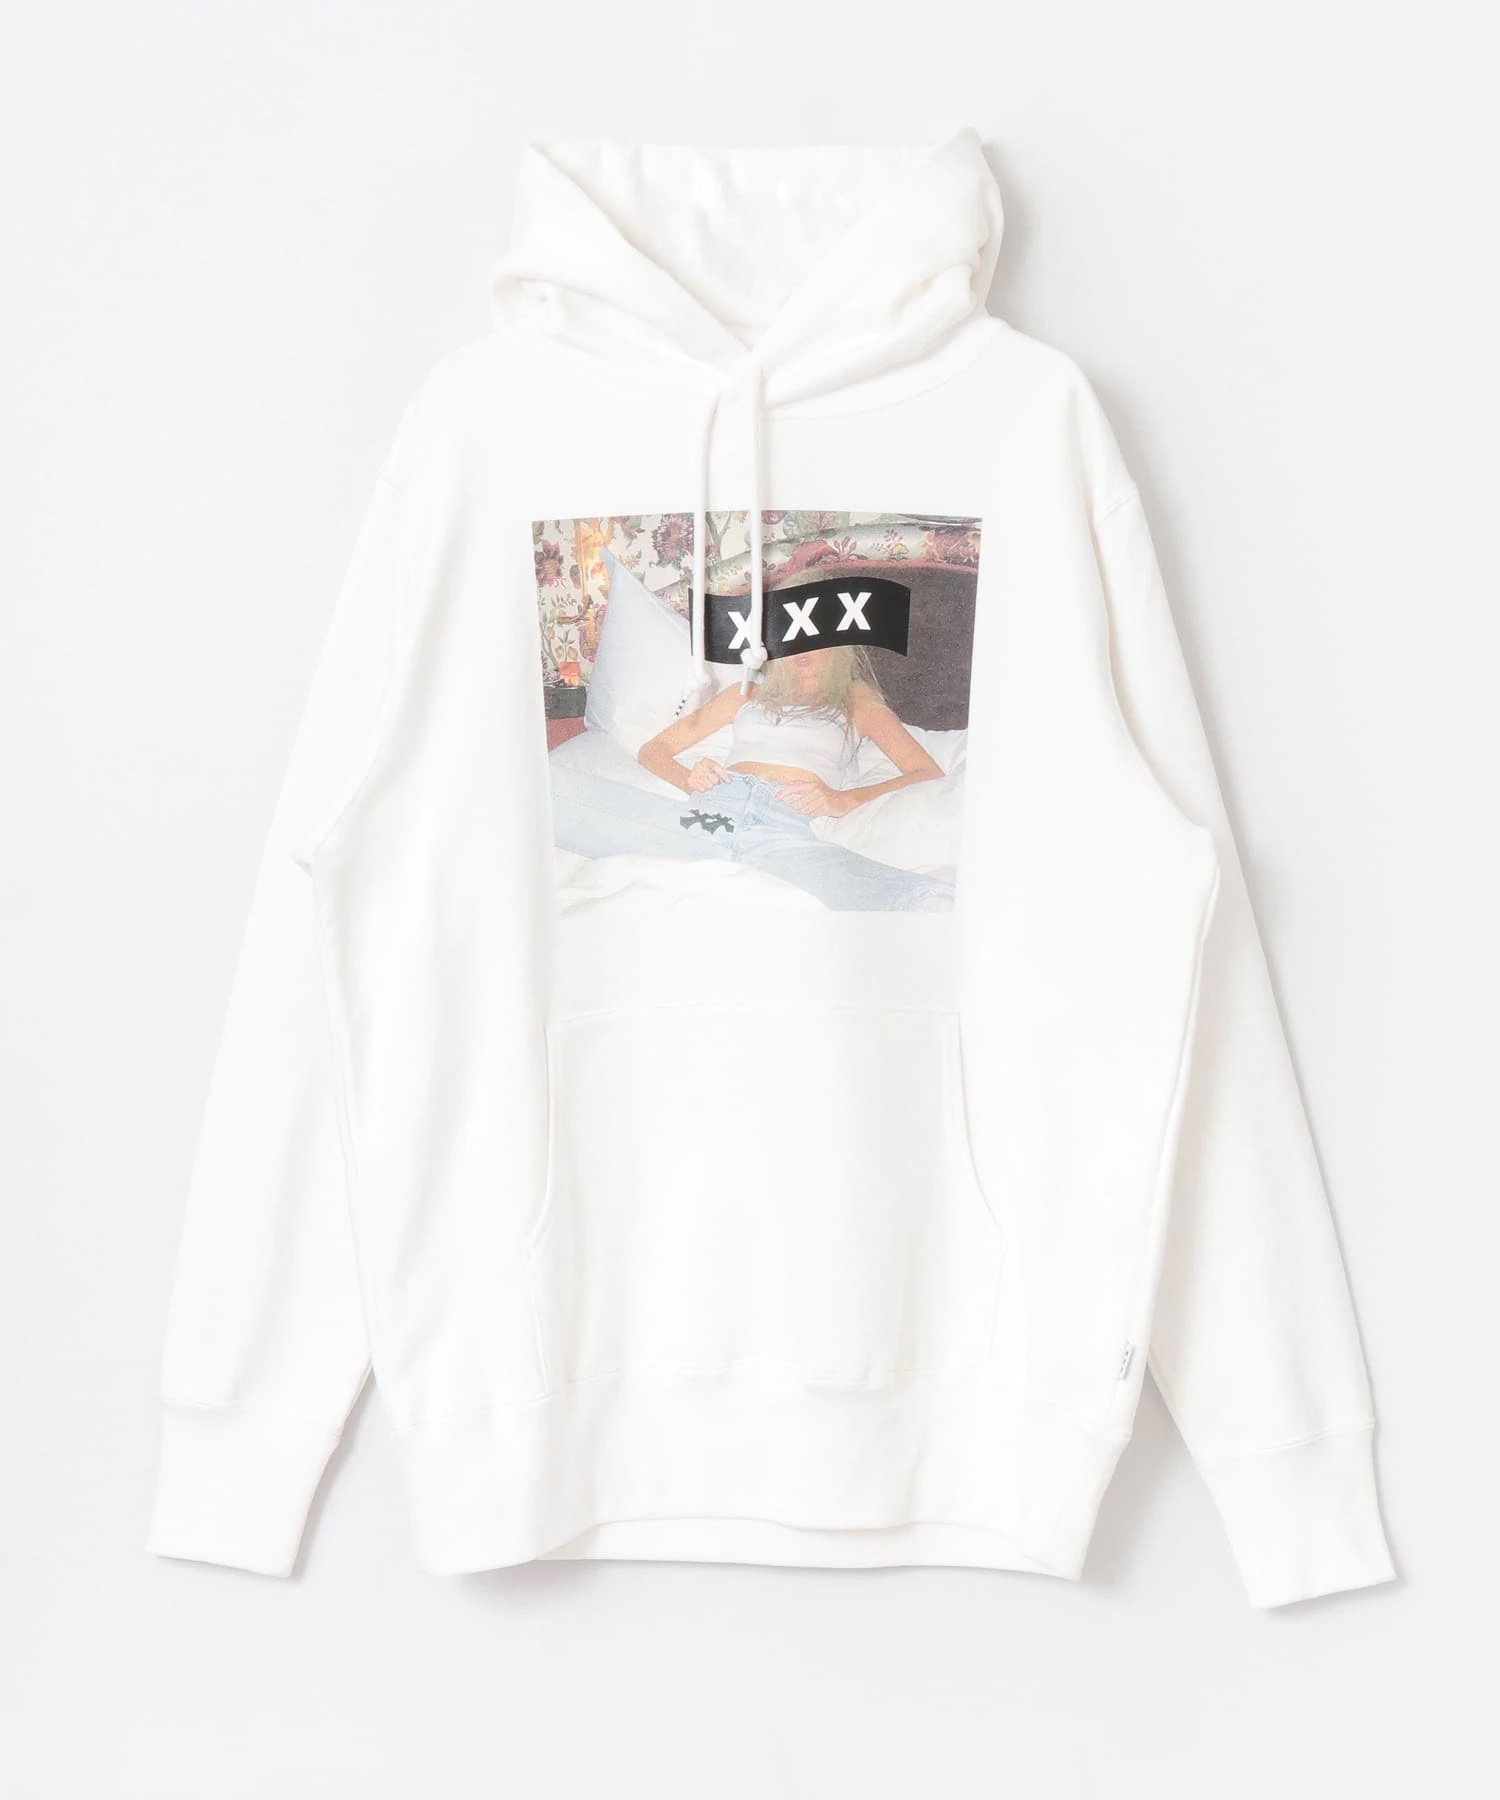 SnowMan 渡辺翔太 私服 人狼 パーカー GOD SELECTION XXX HOODIE